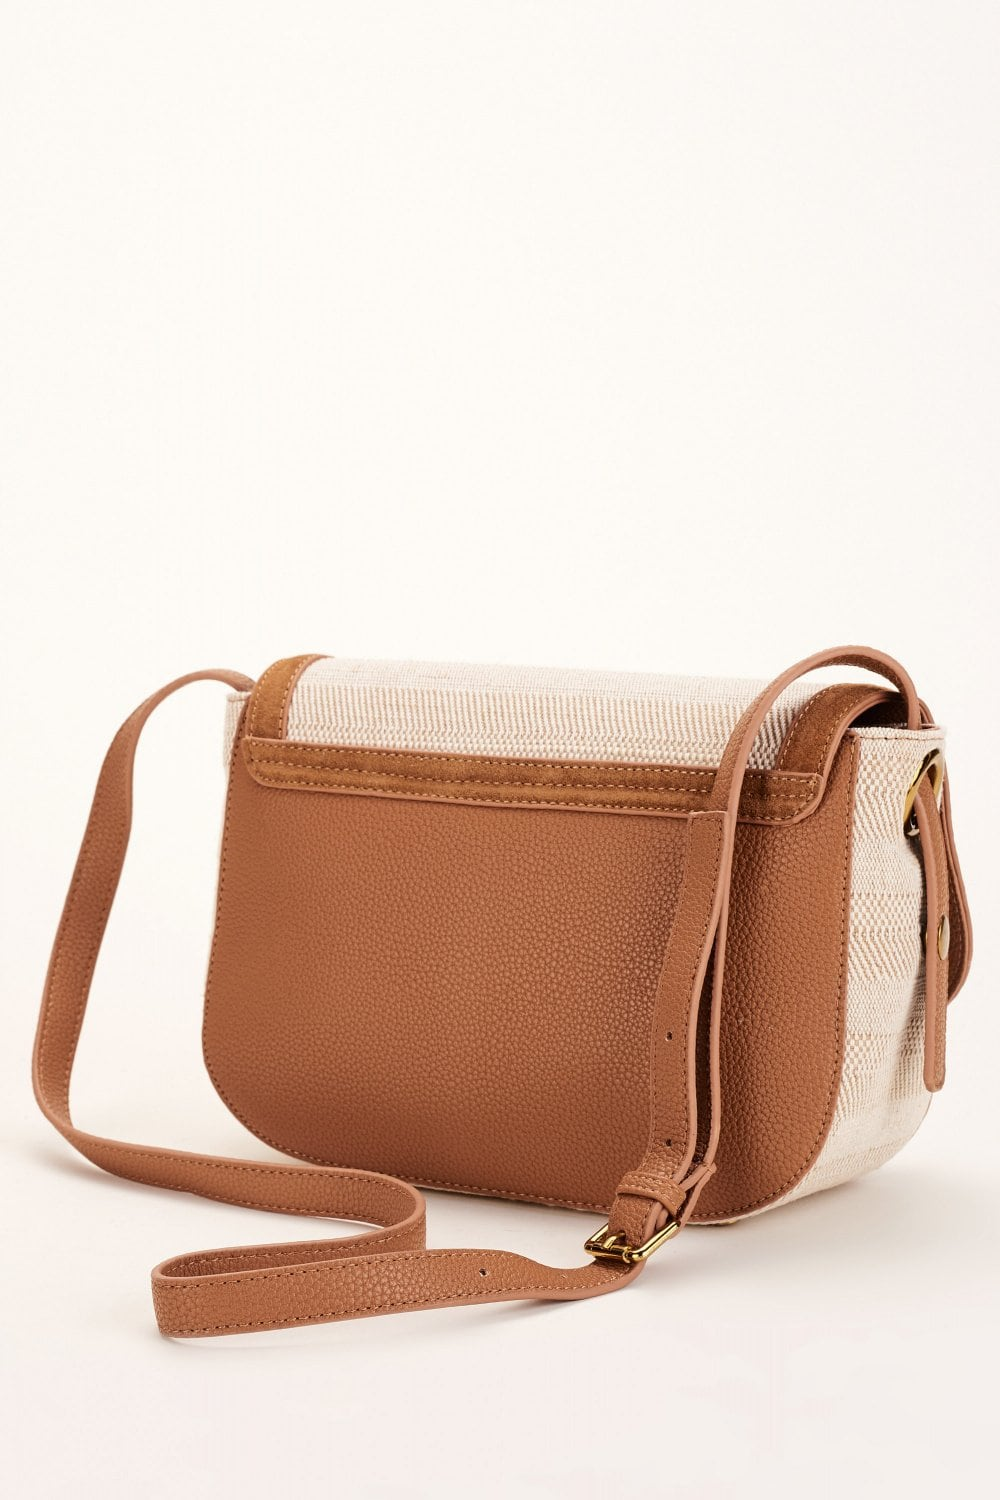 Cross-body bag - Salsa